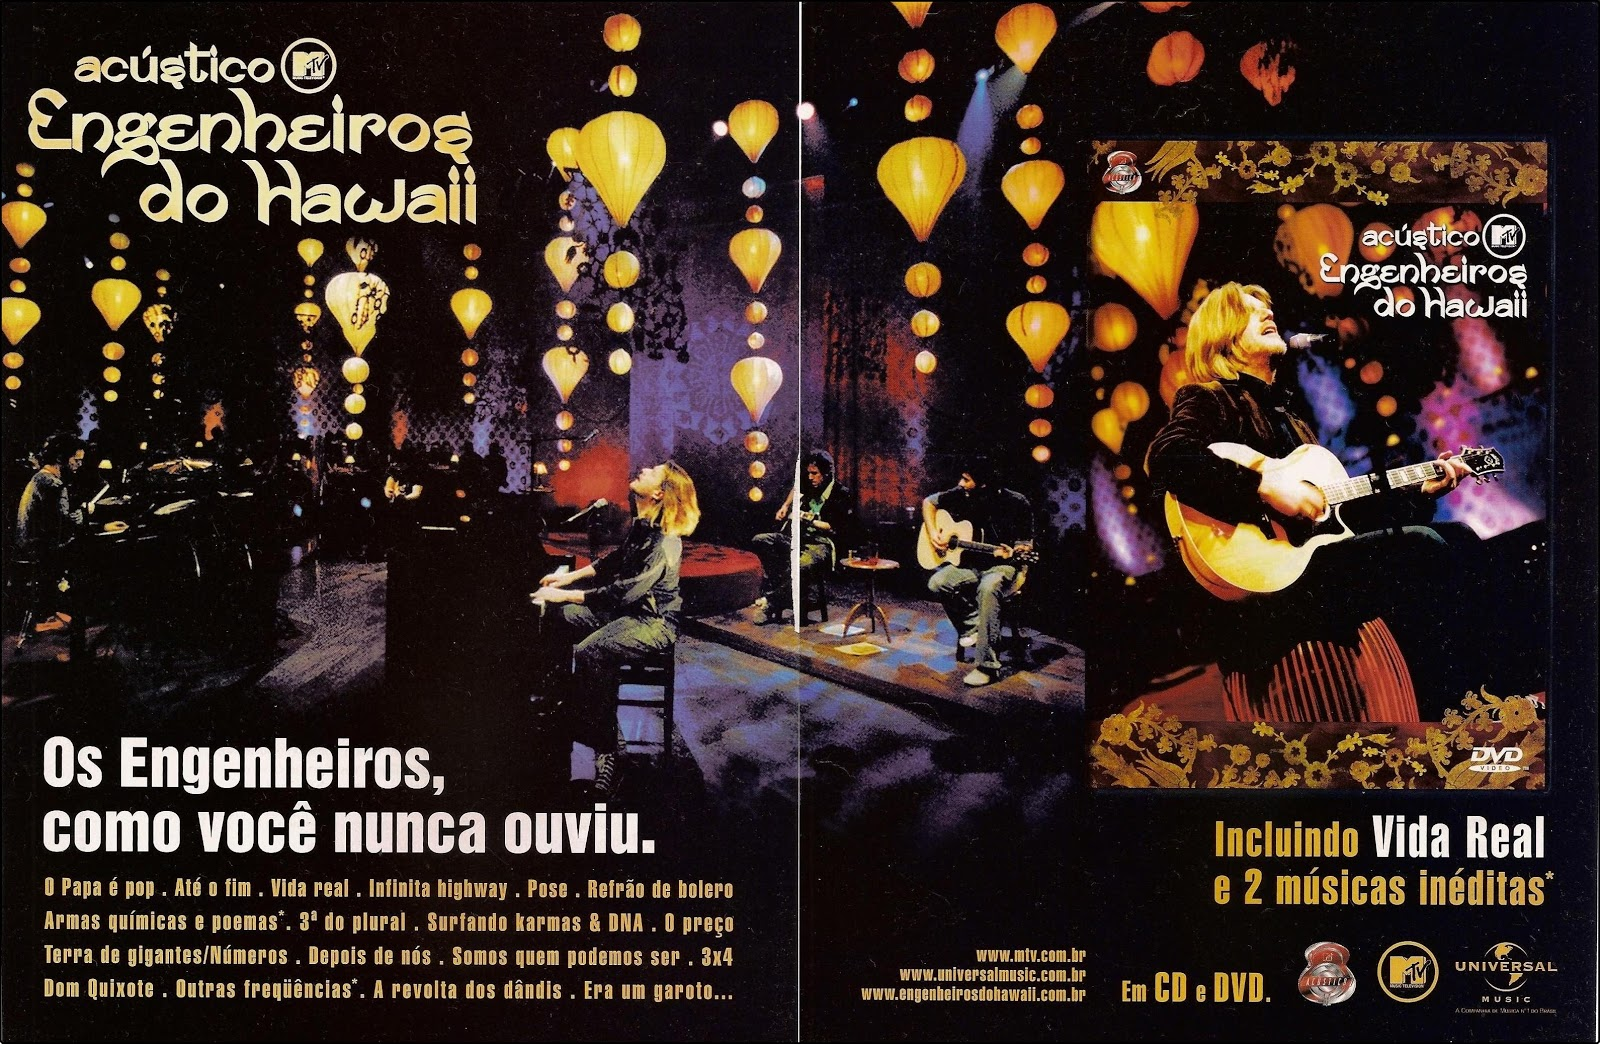 audio dvd engenheiros do hawaii acustico mtv